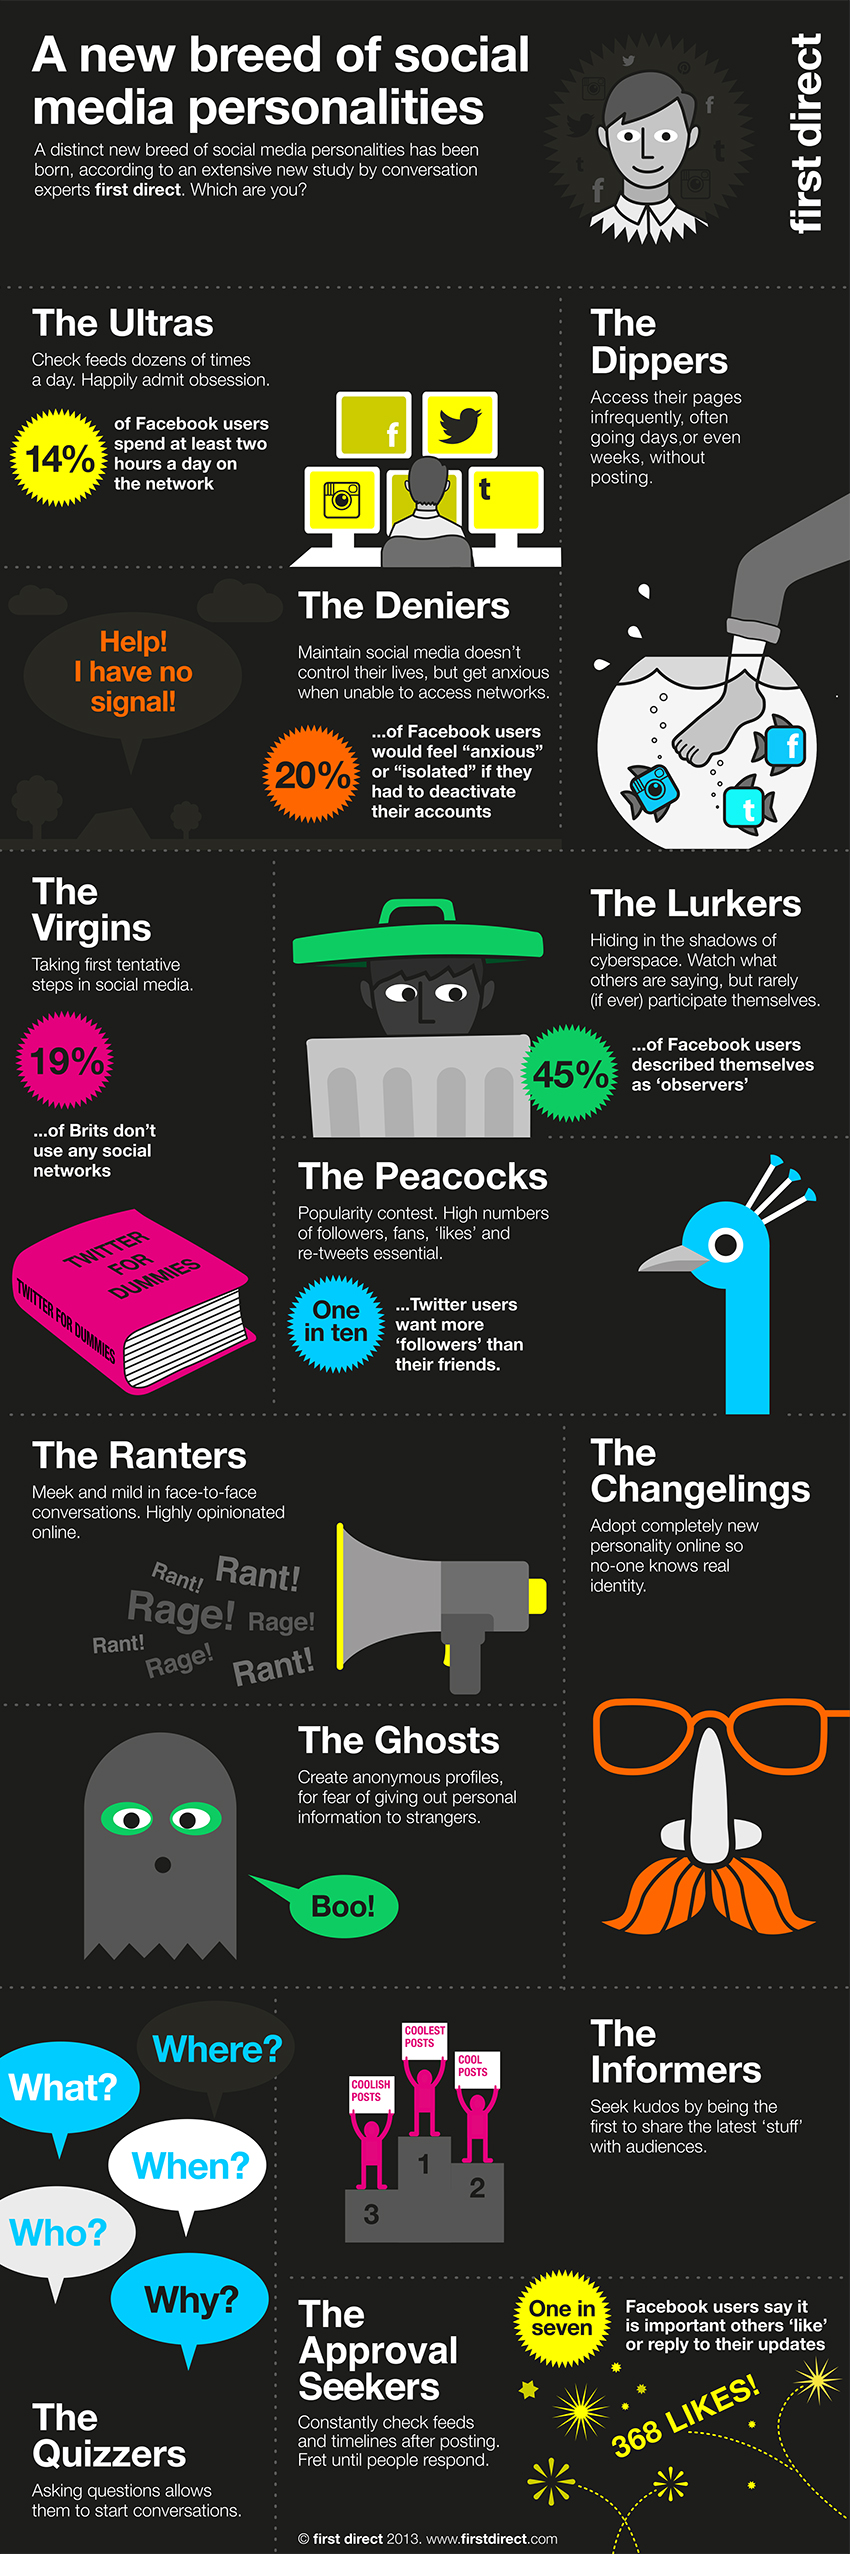 first direct Social Experiment Infographic